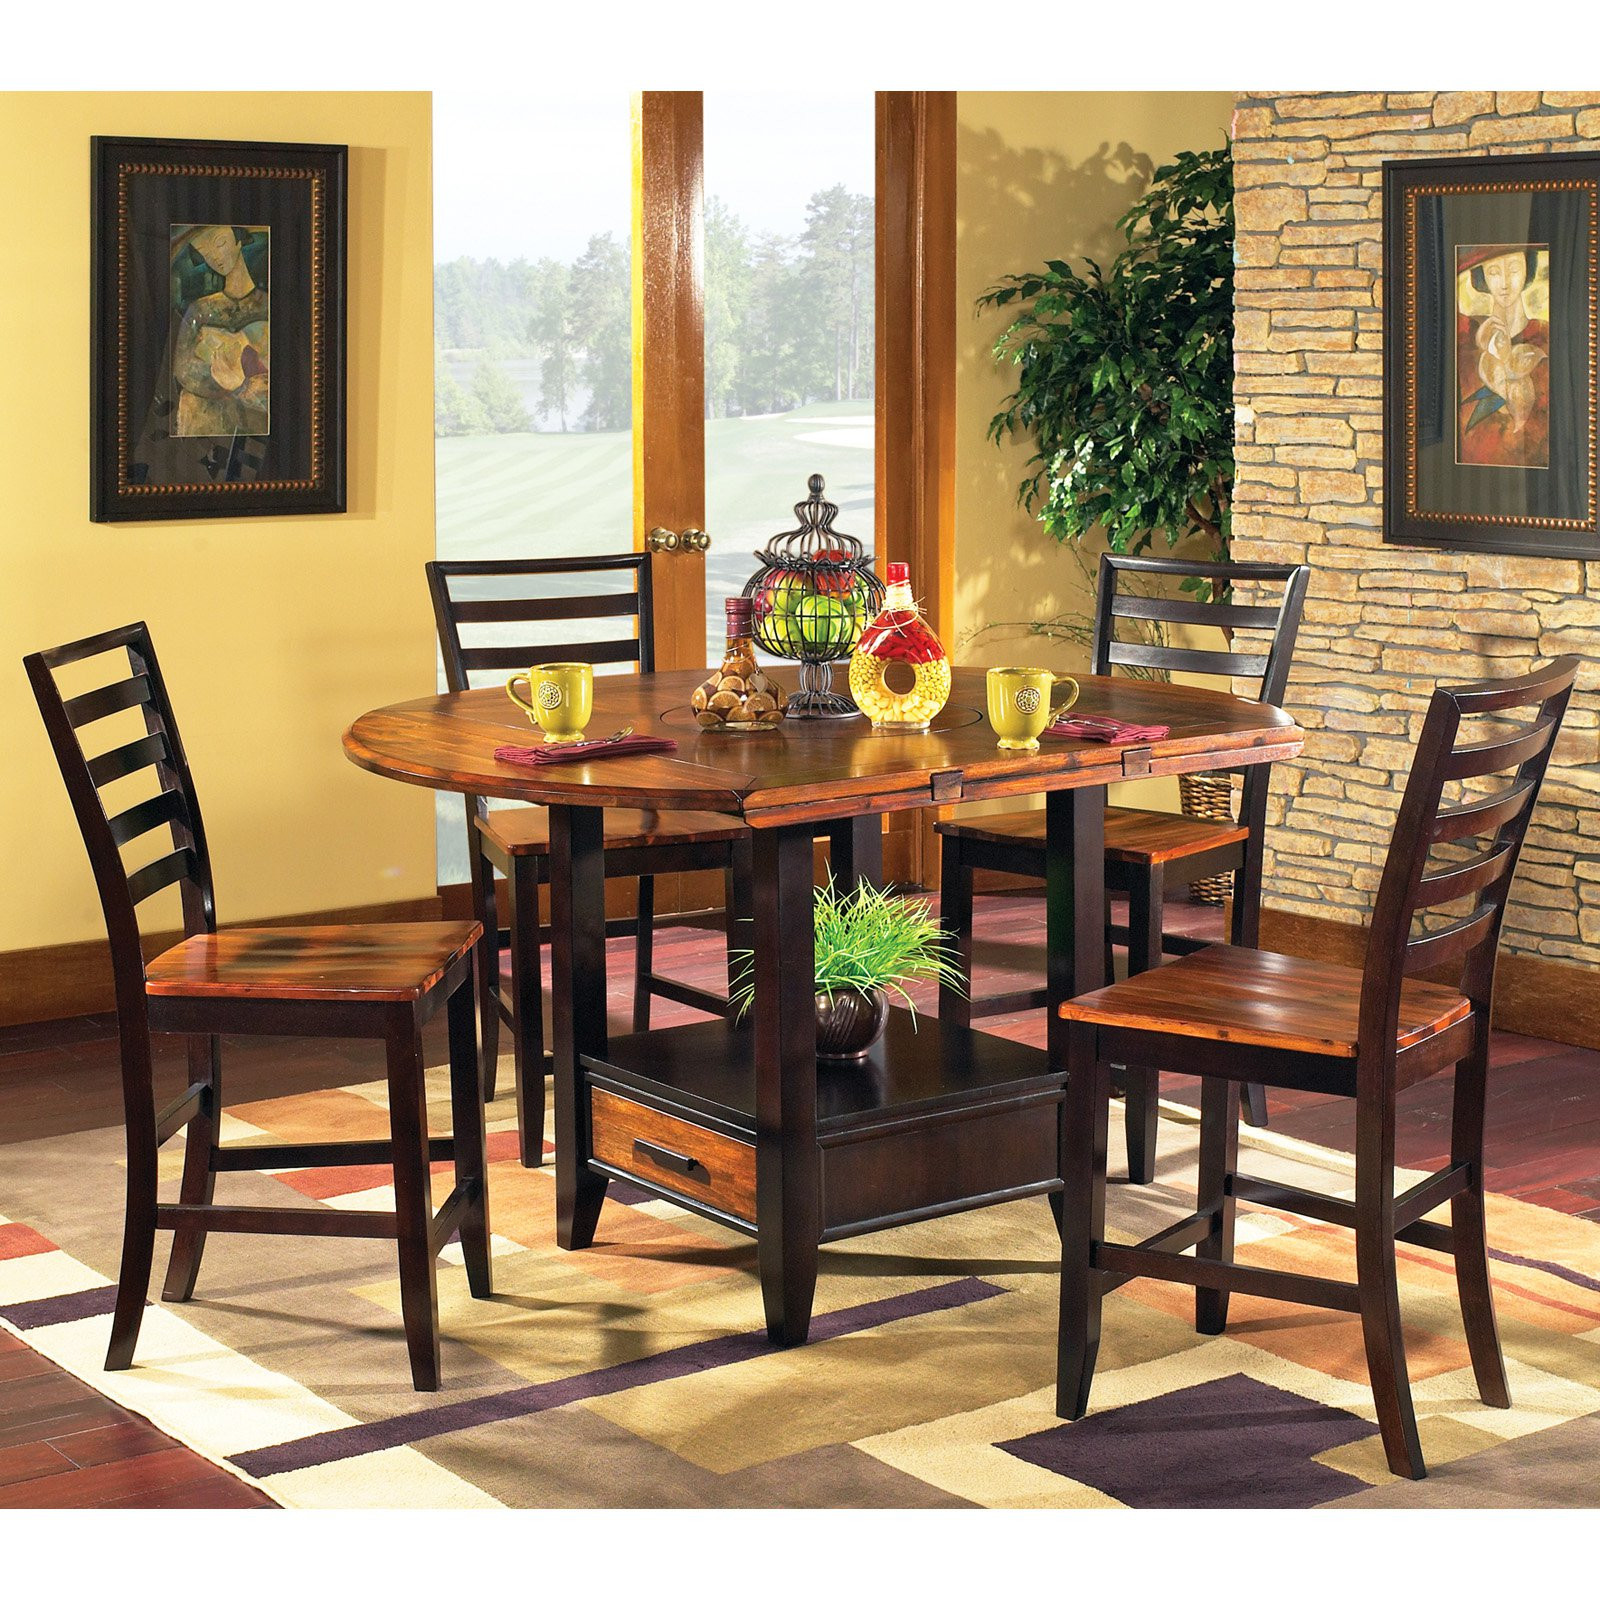 Best ideas about Dining Table With Storage . Save or Pin Steve Silver Abaco 5 Piece Counter Height Dining Table Now.